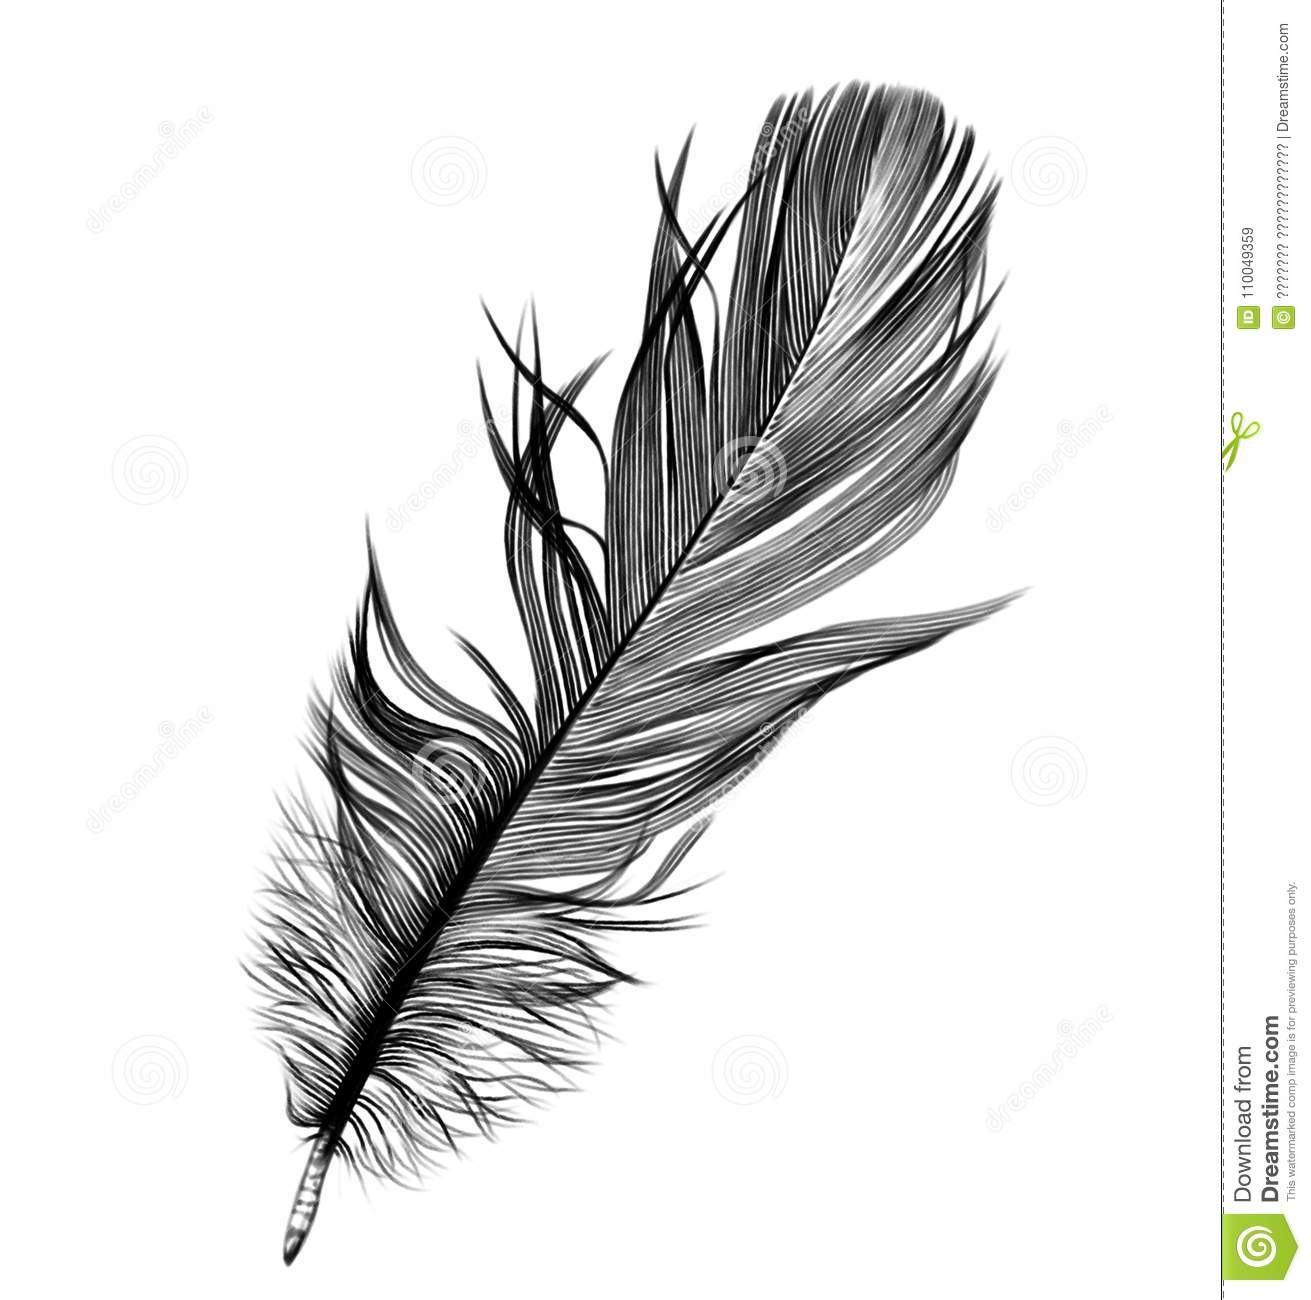 Bird feather quill pencil drawing stock illustration